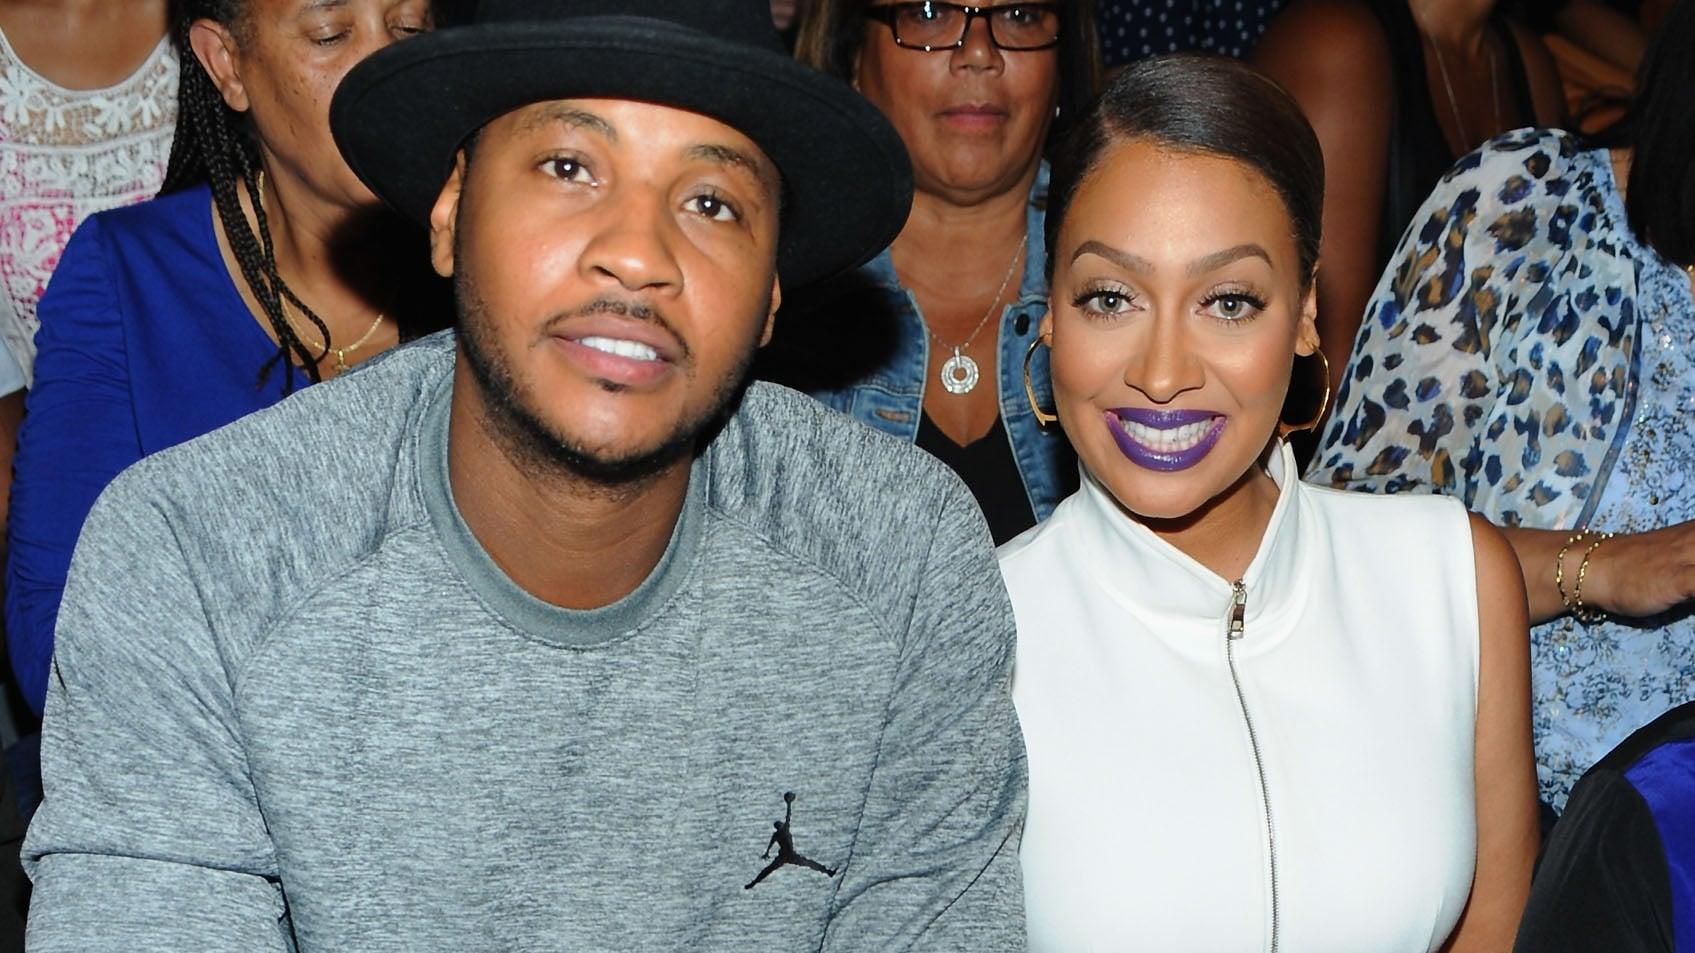 La La Anthony - How Does She Feel About Carmelo Leaving NYC After Their Reunion?